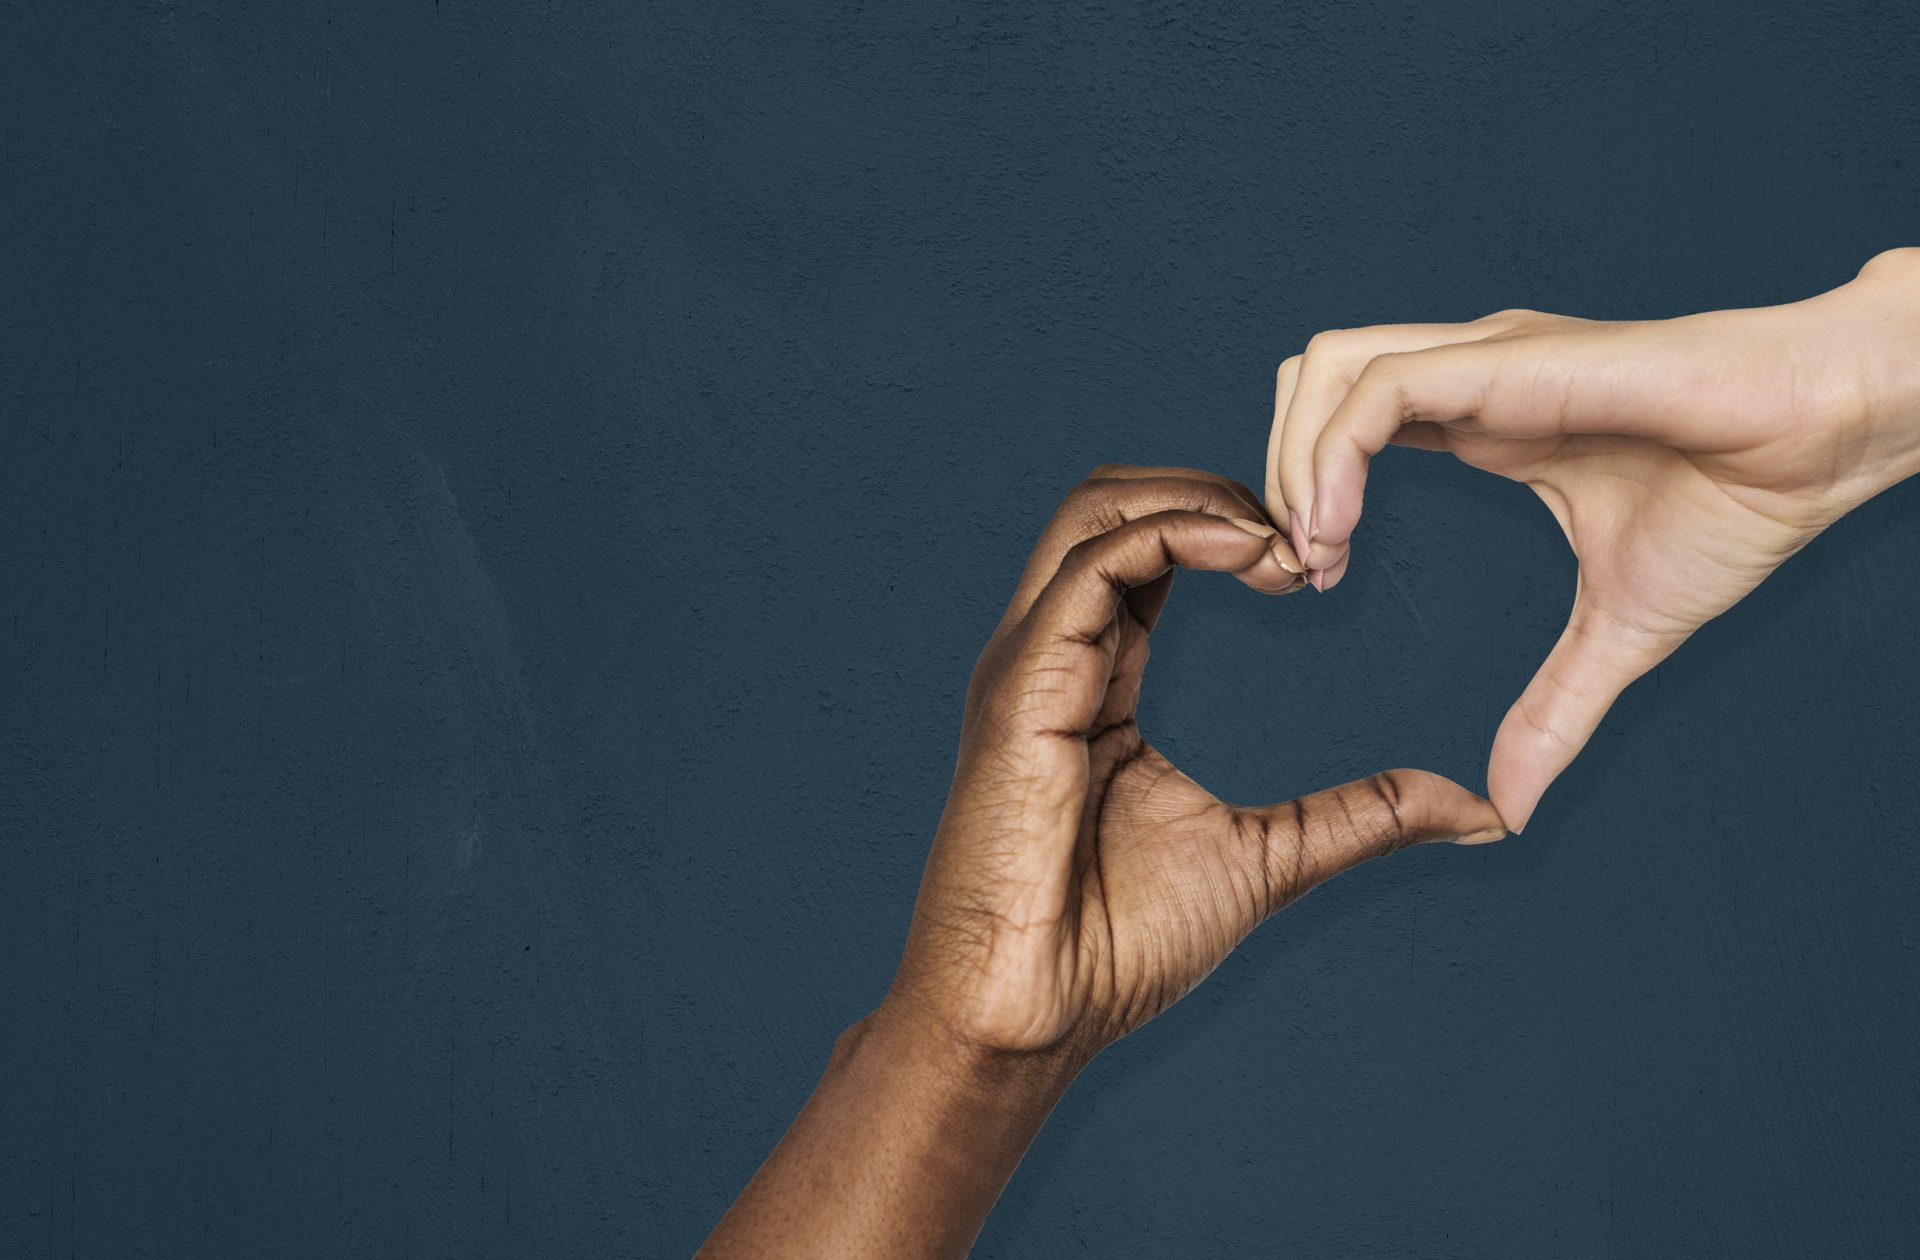 multiracial hands forming a heart shape